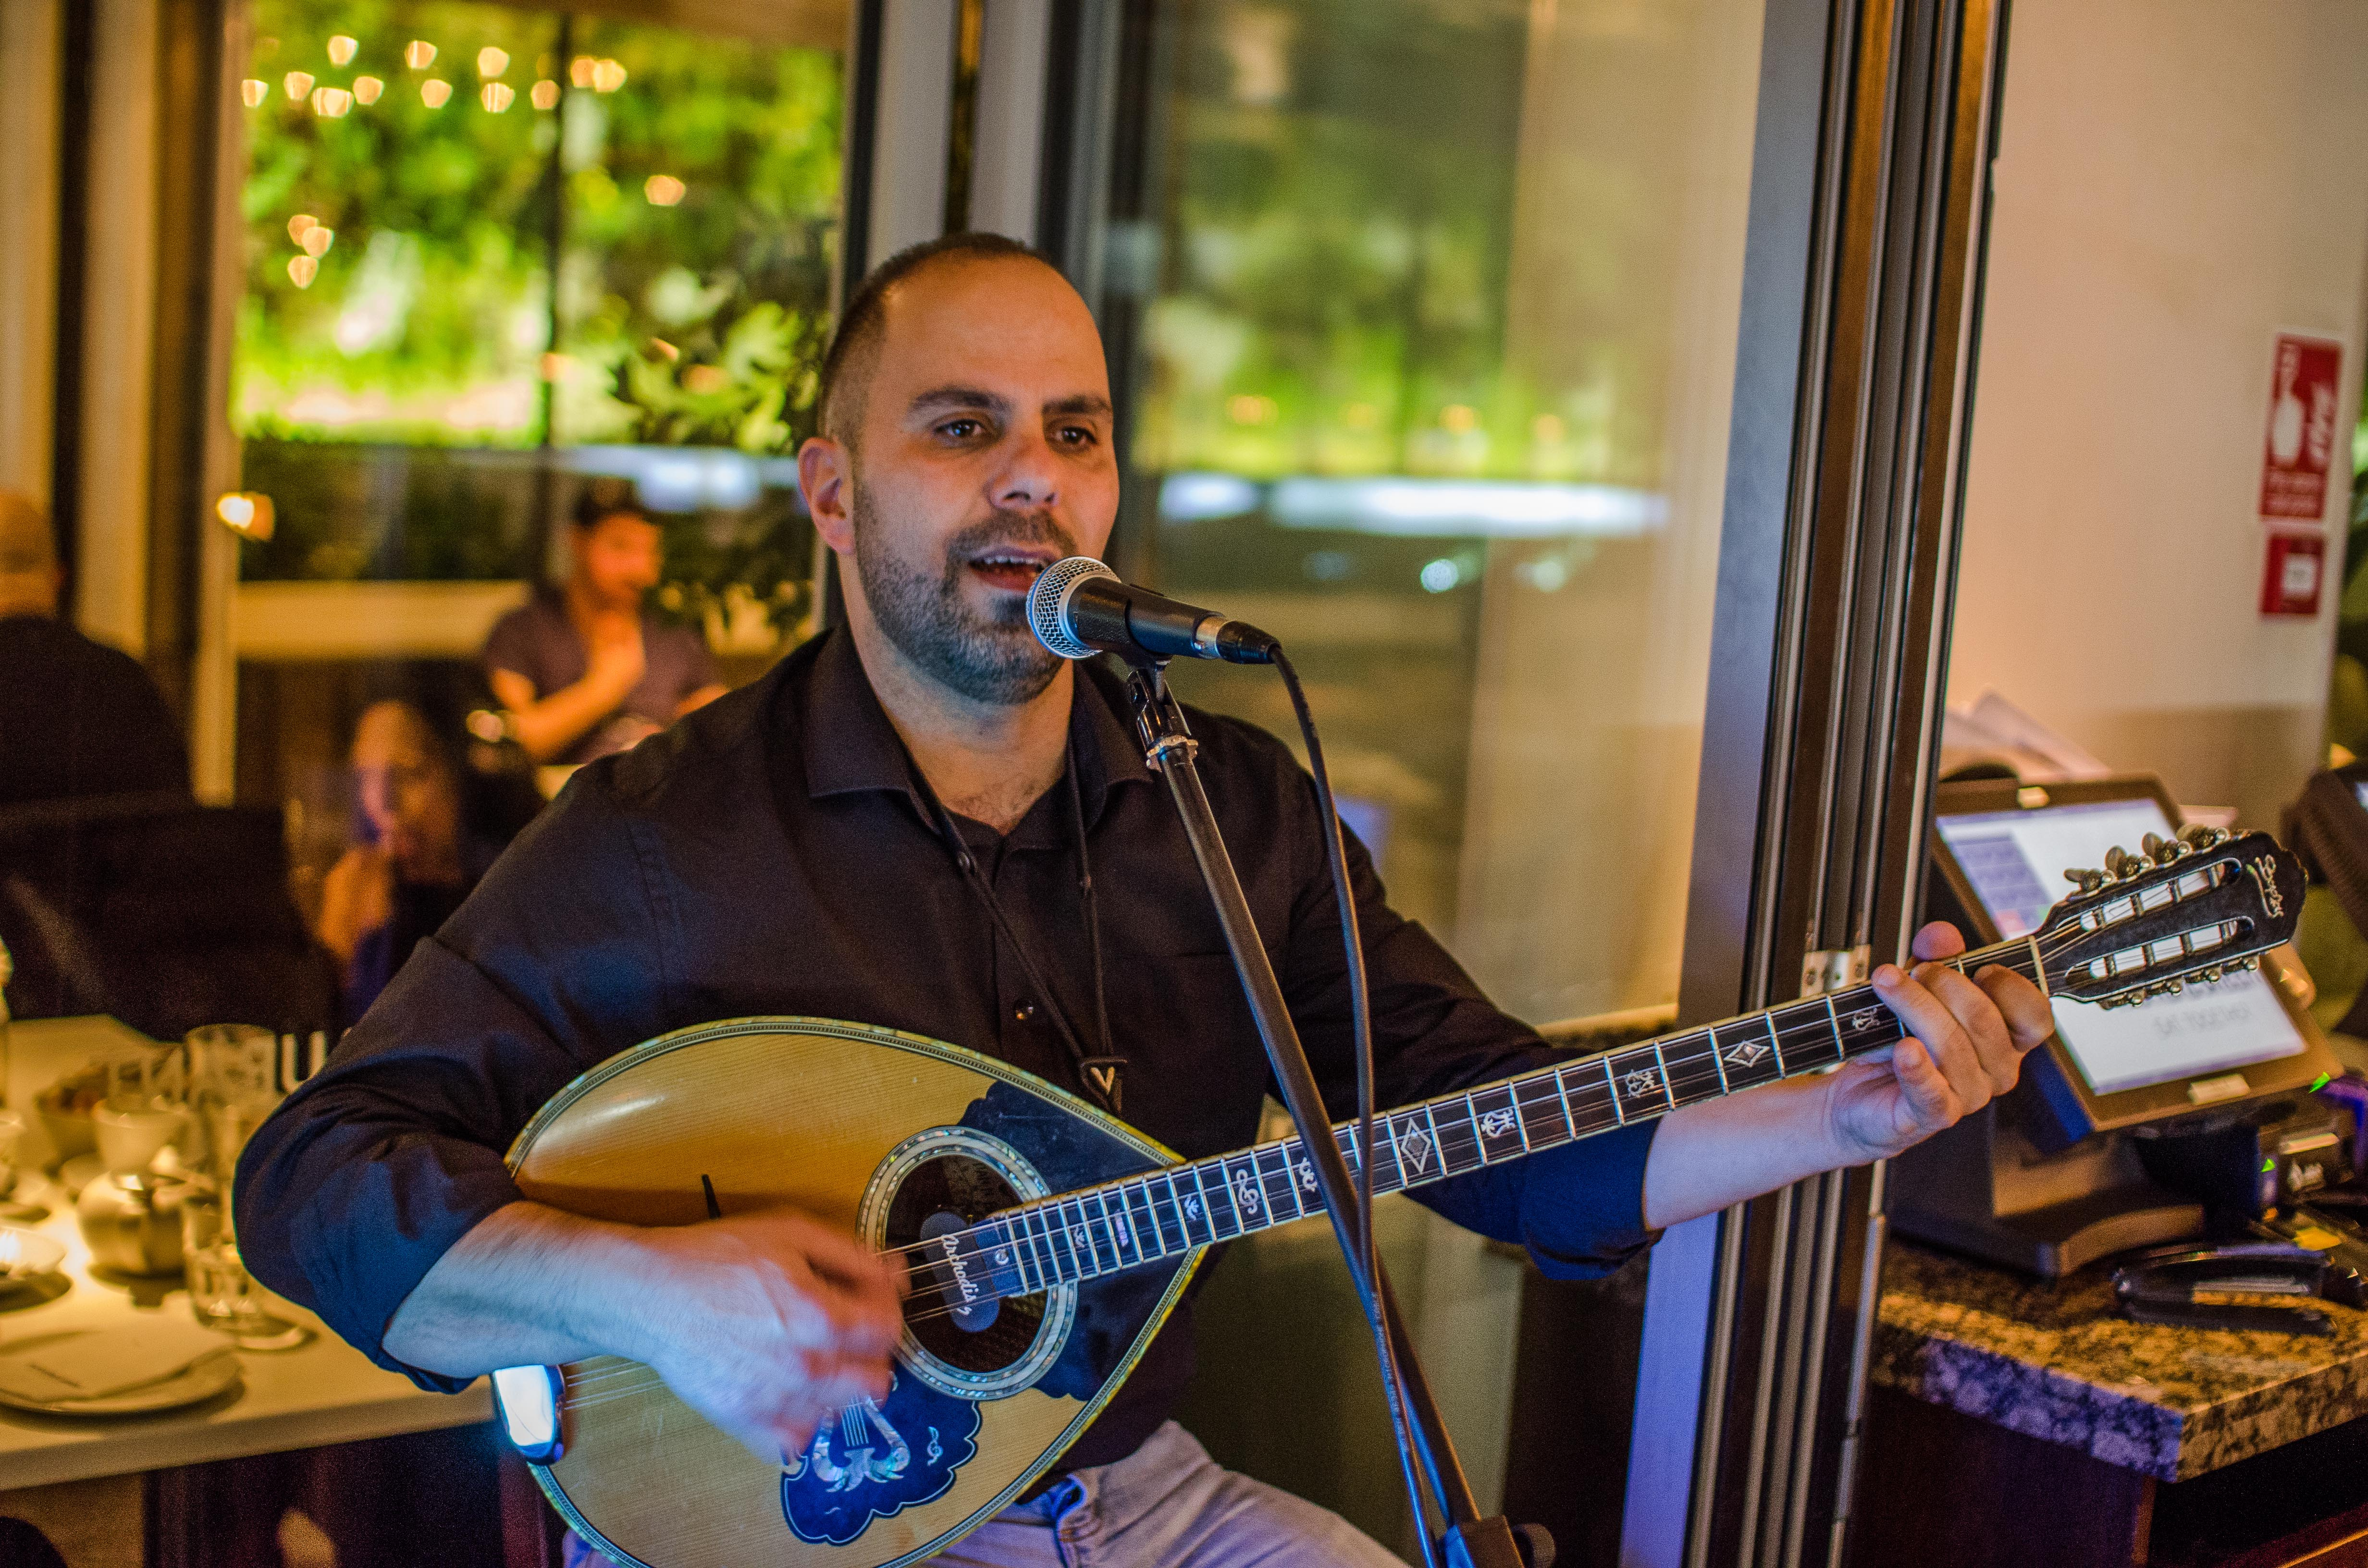 The Real Greek - Greek Food & Ingredients - Live Music